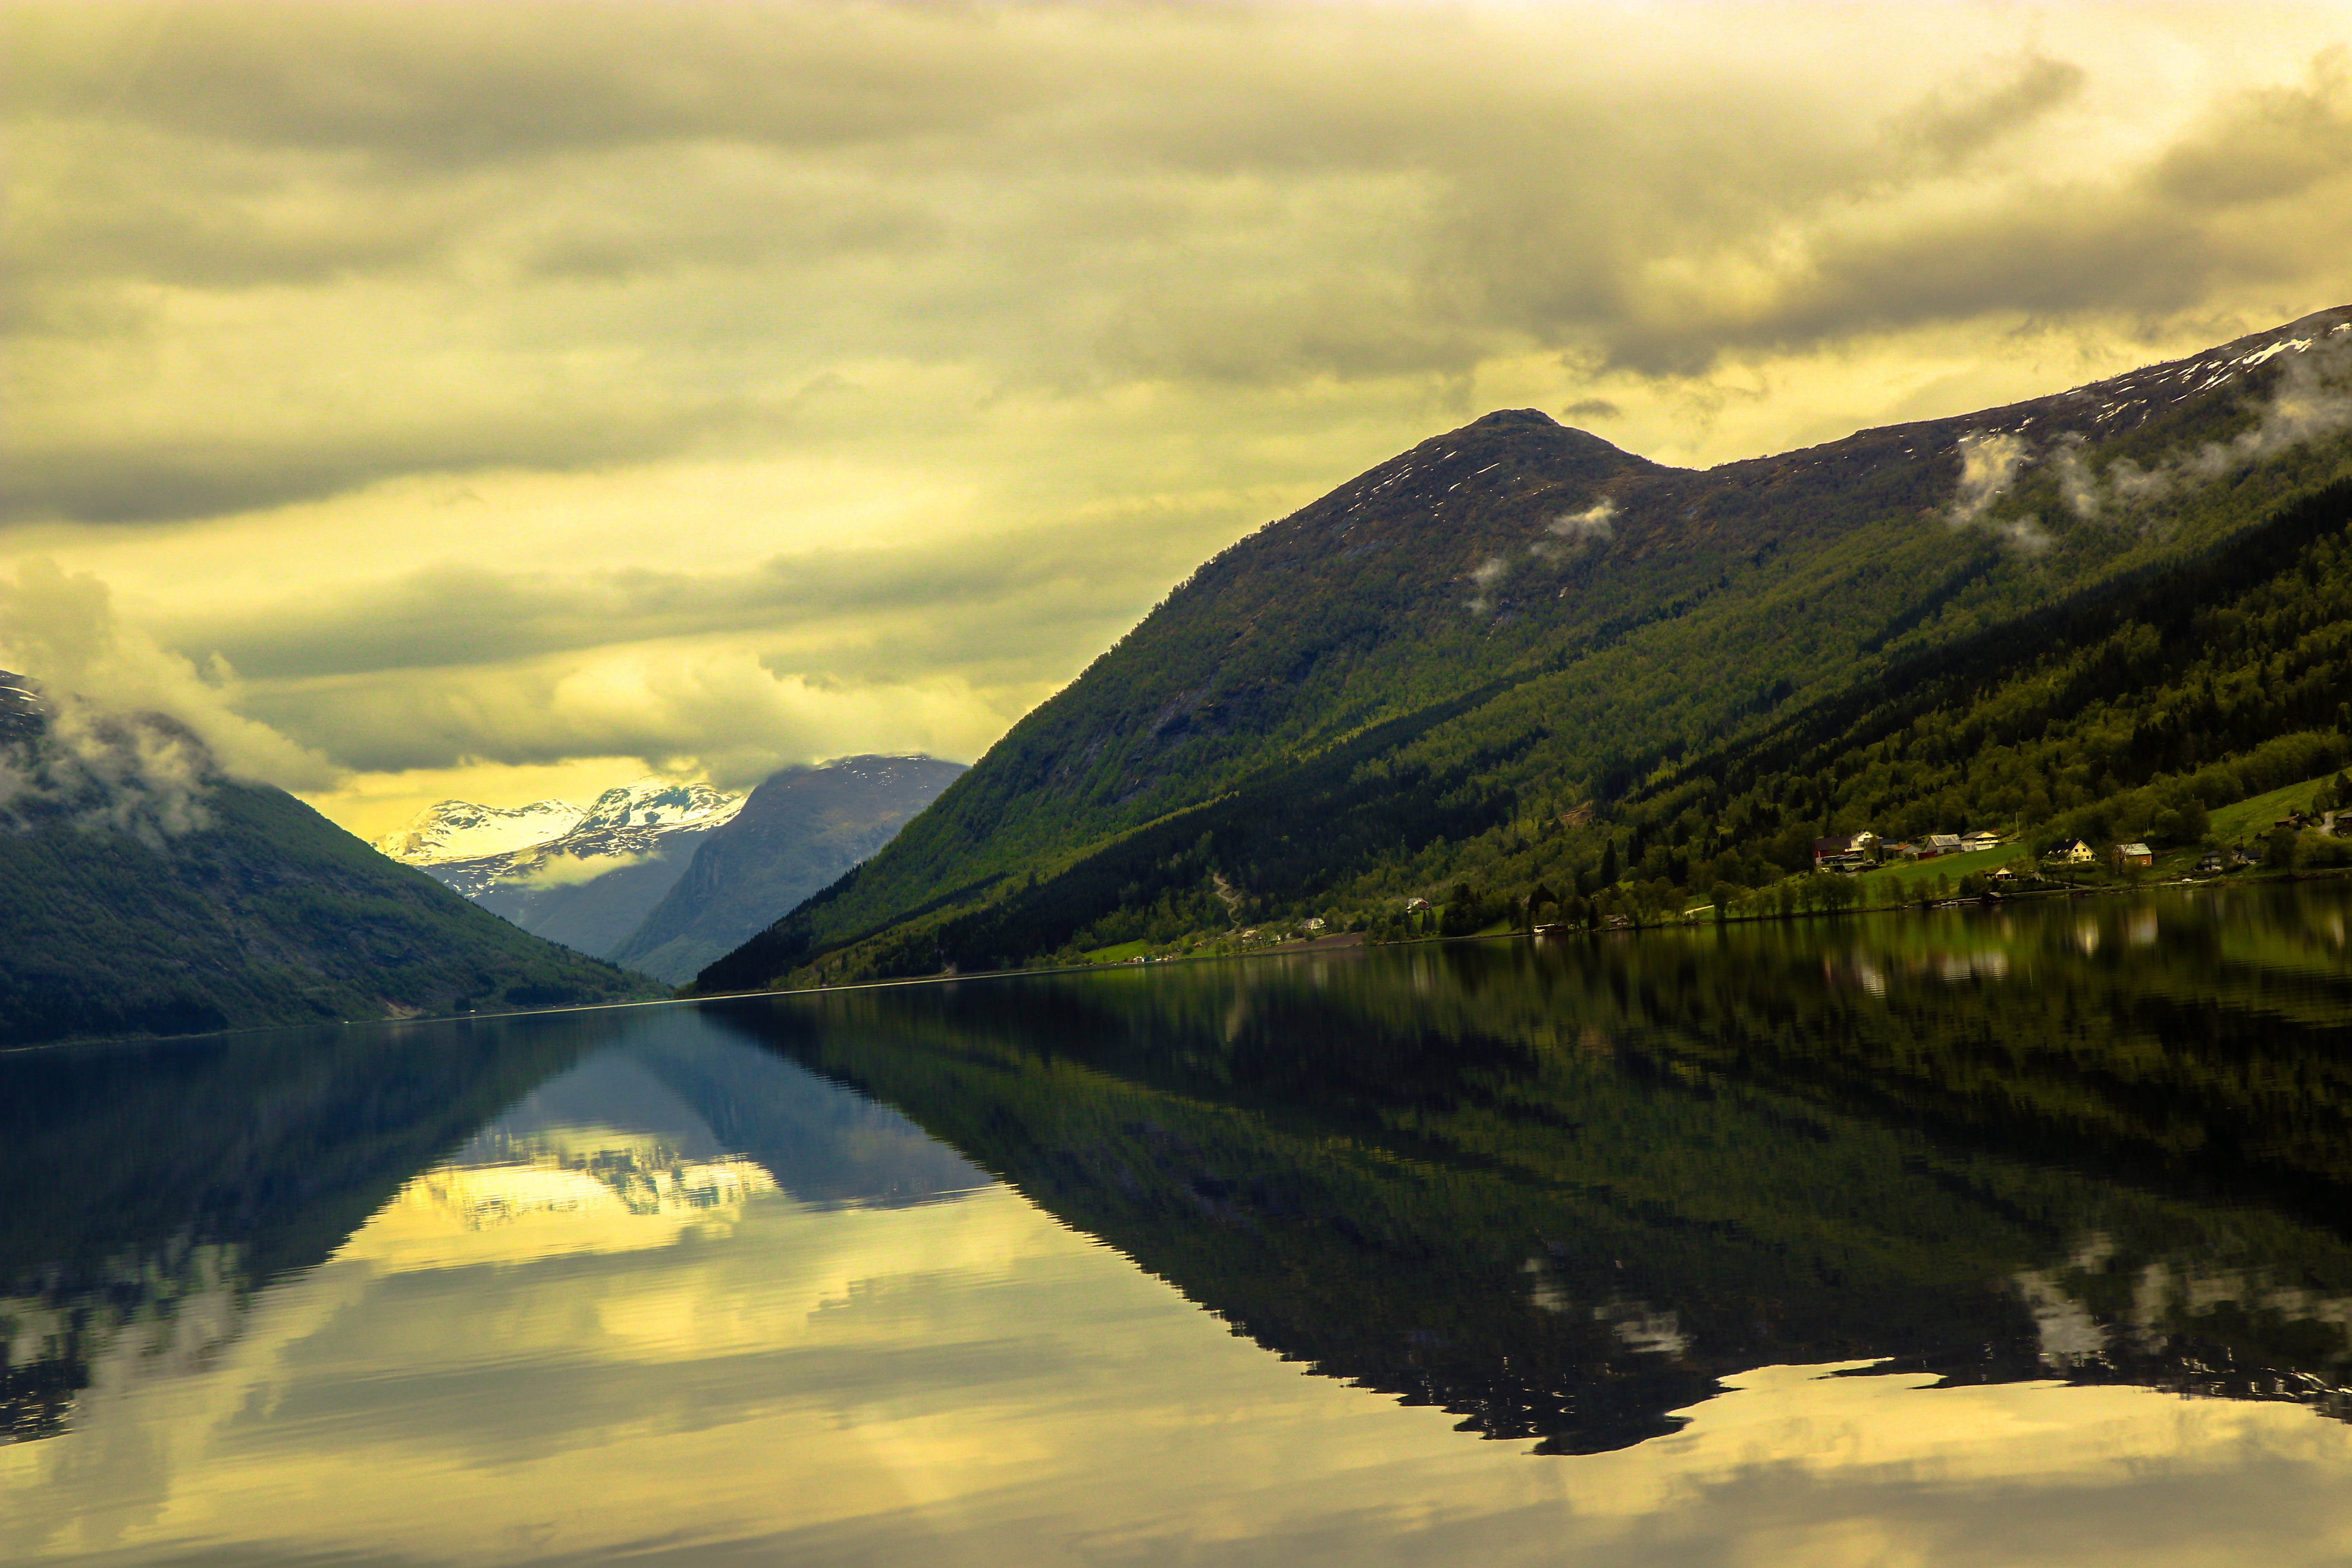 Reflective Photography of Mountain and Body of Water